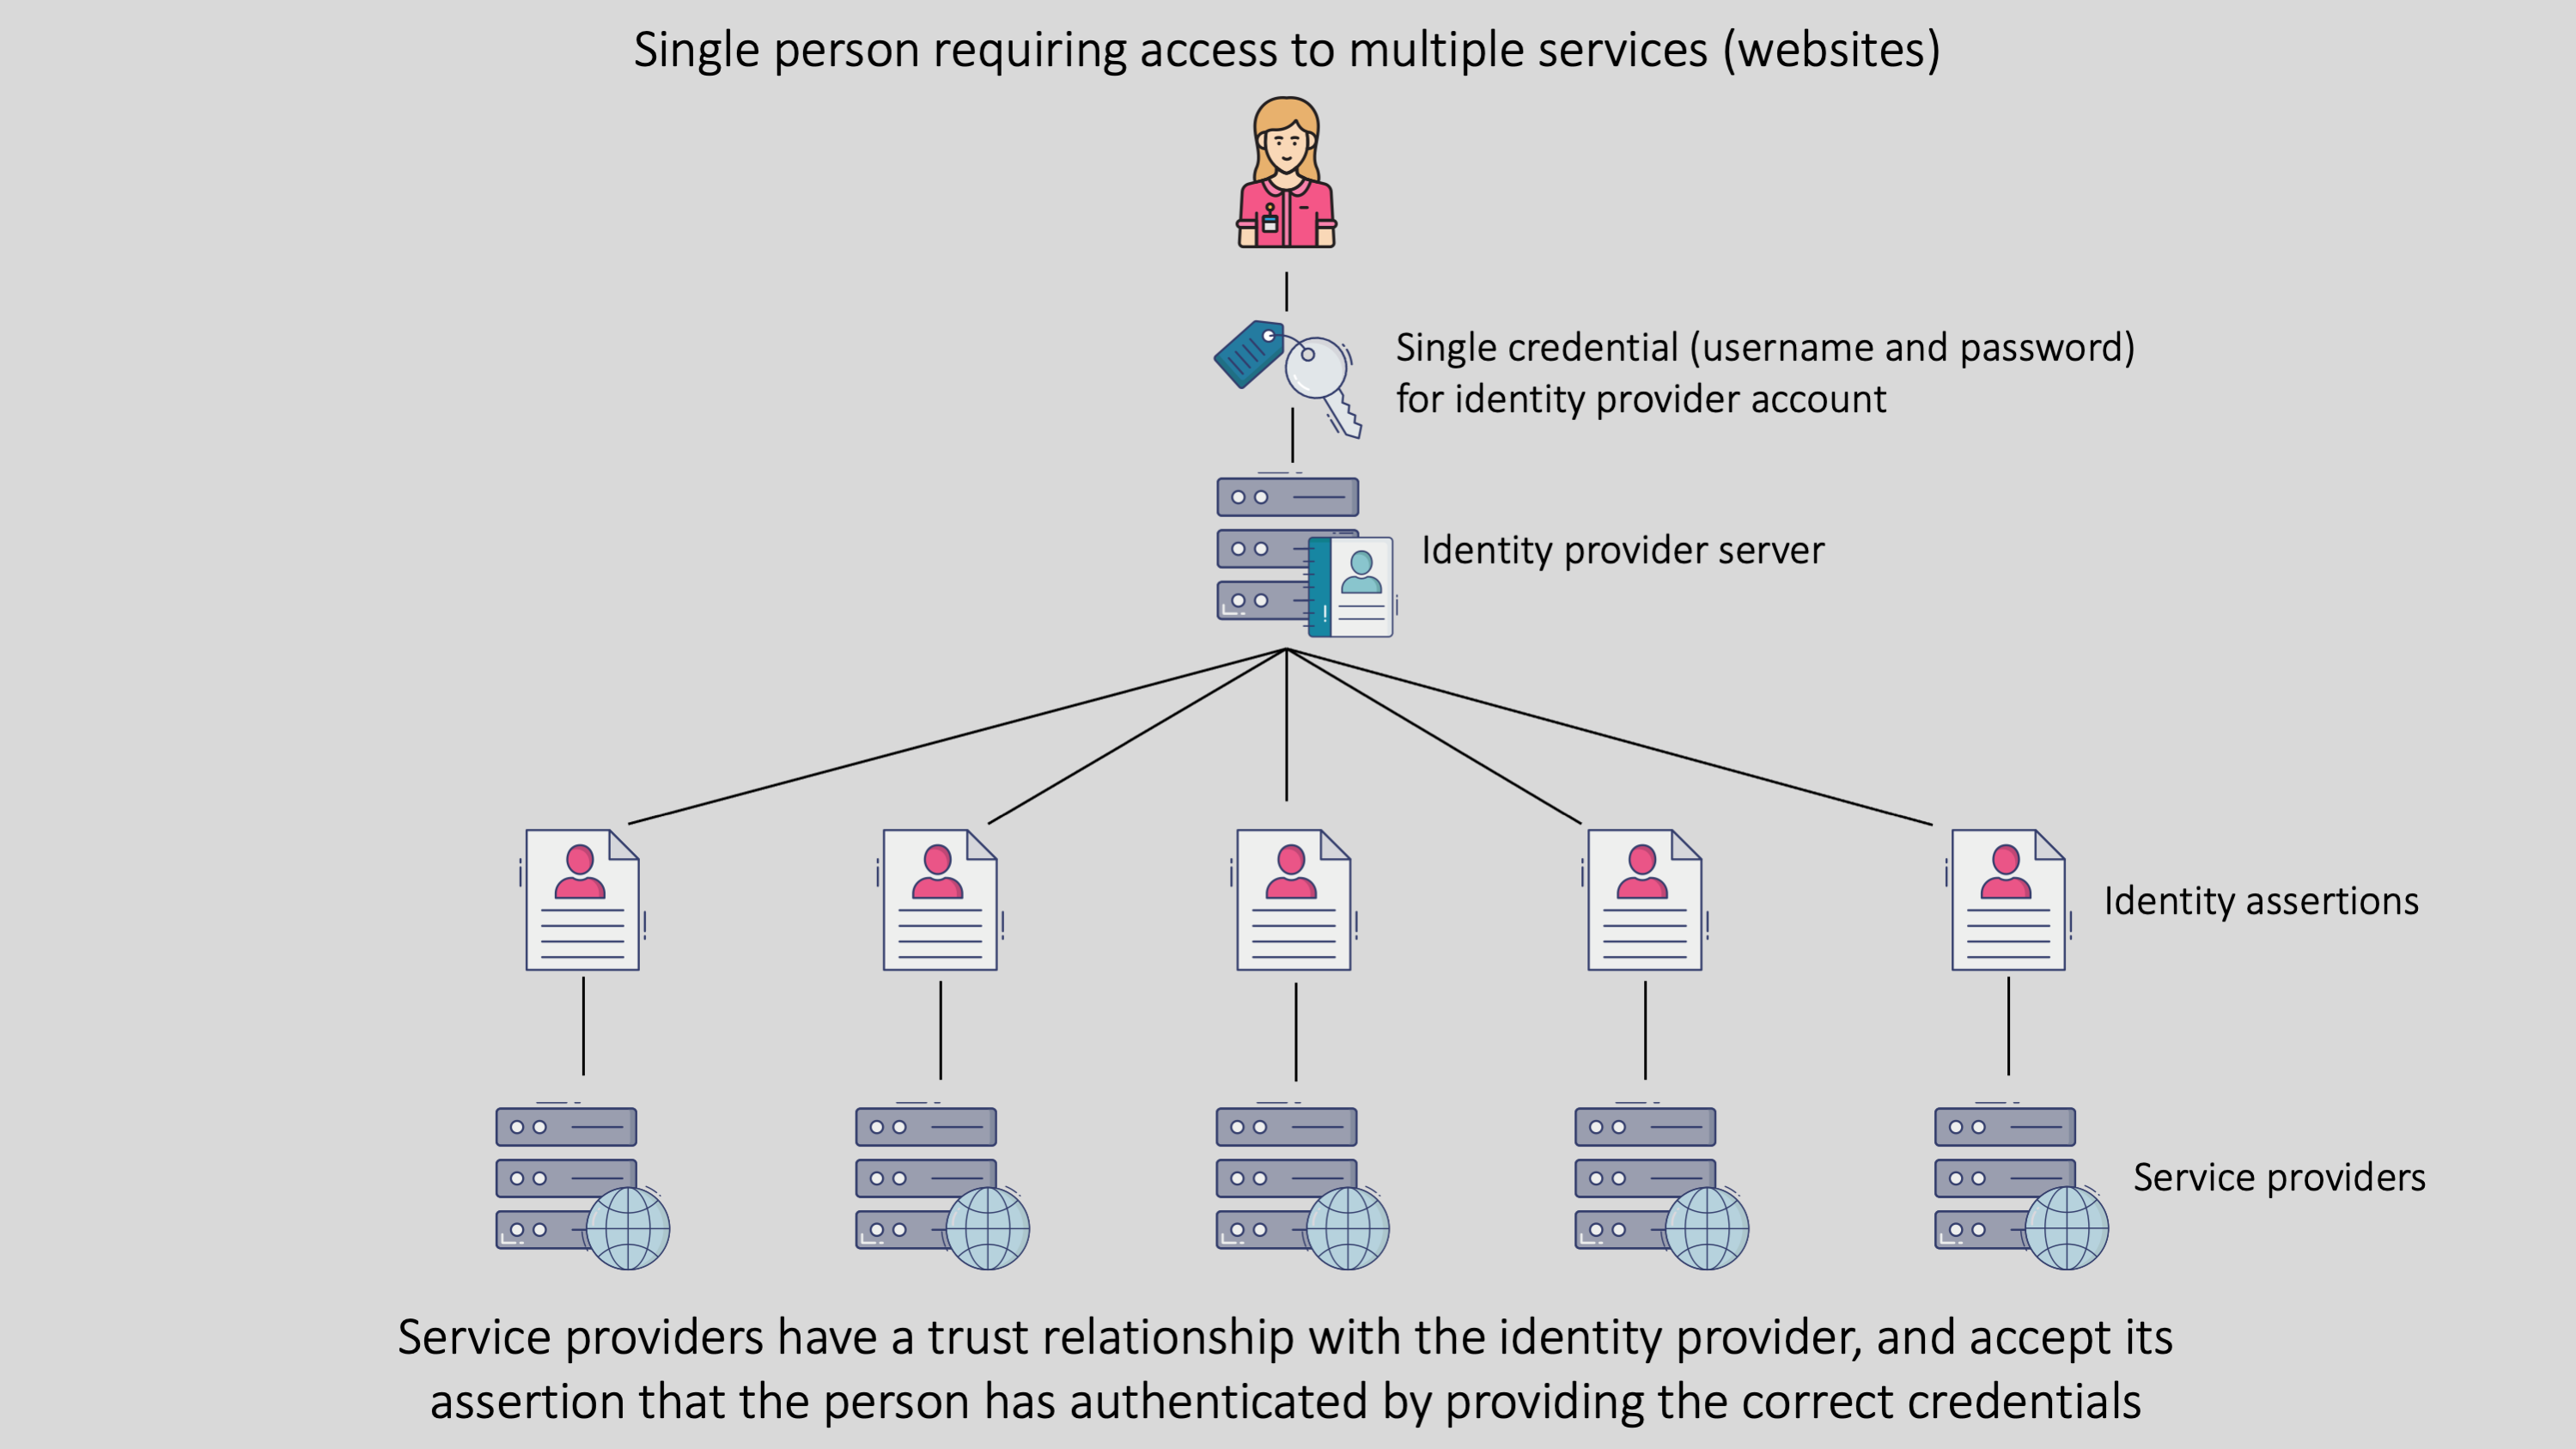 Diagram depicting a person accessing multiple services with a single credential using an identity provider